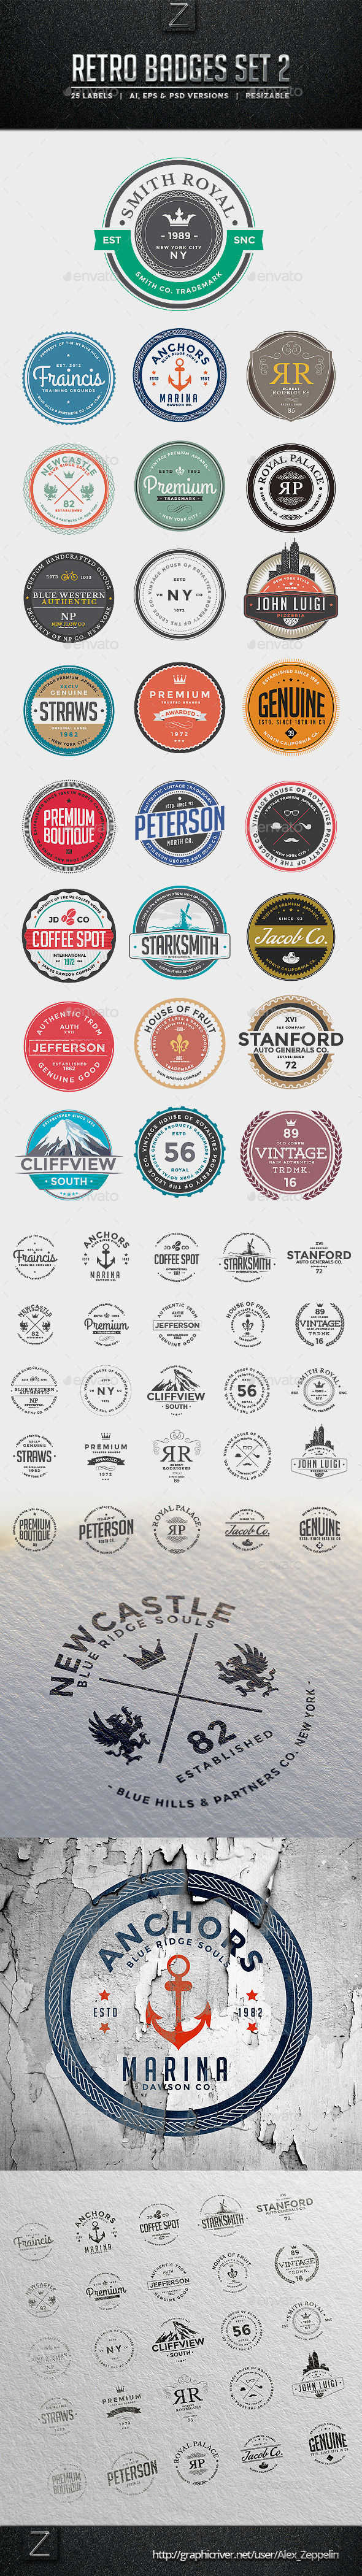 GraphicRiver Retro Badges Set 2 10070679